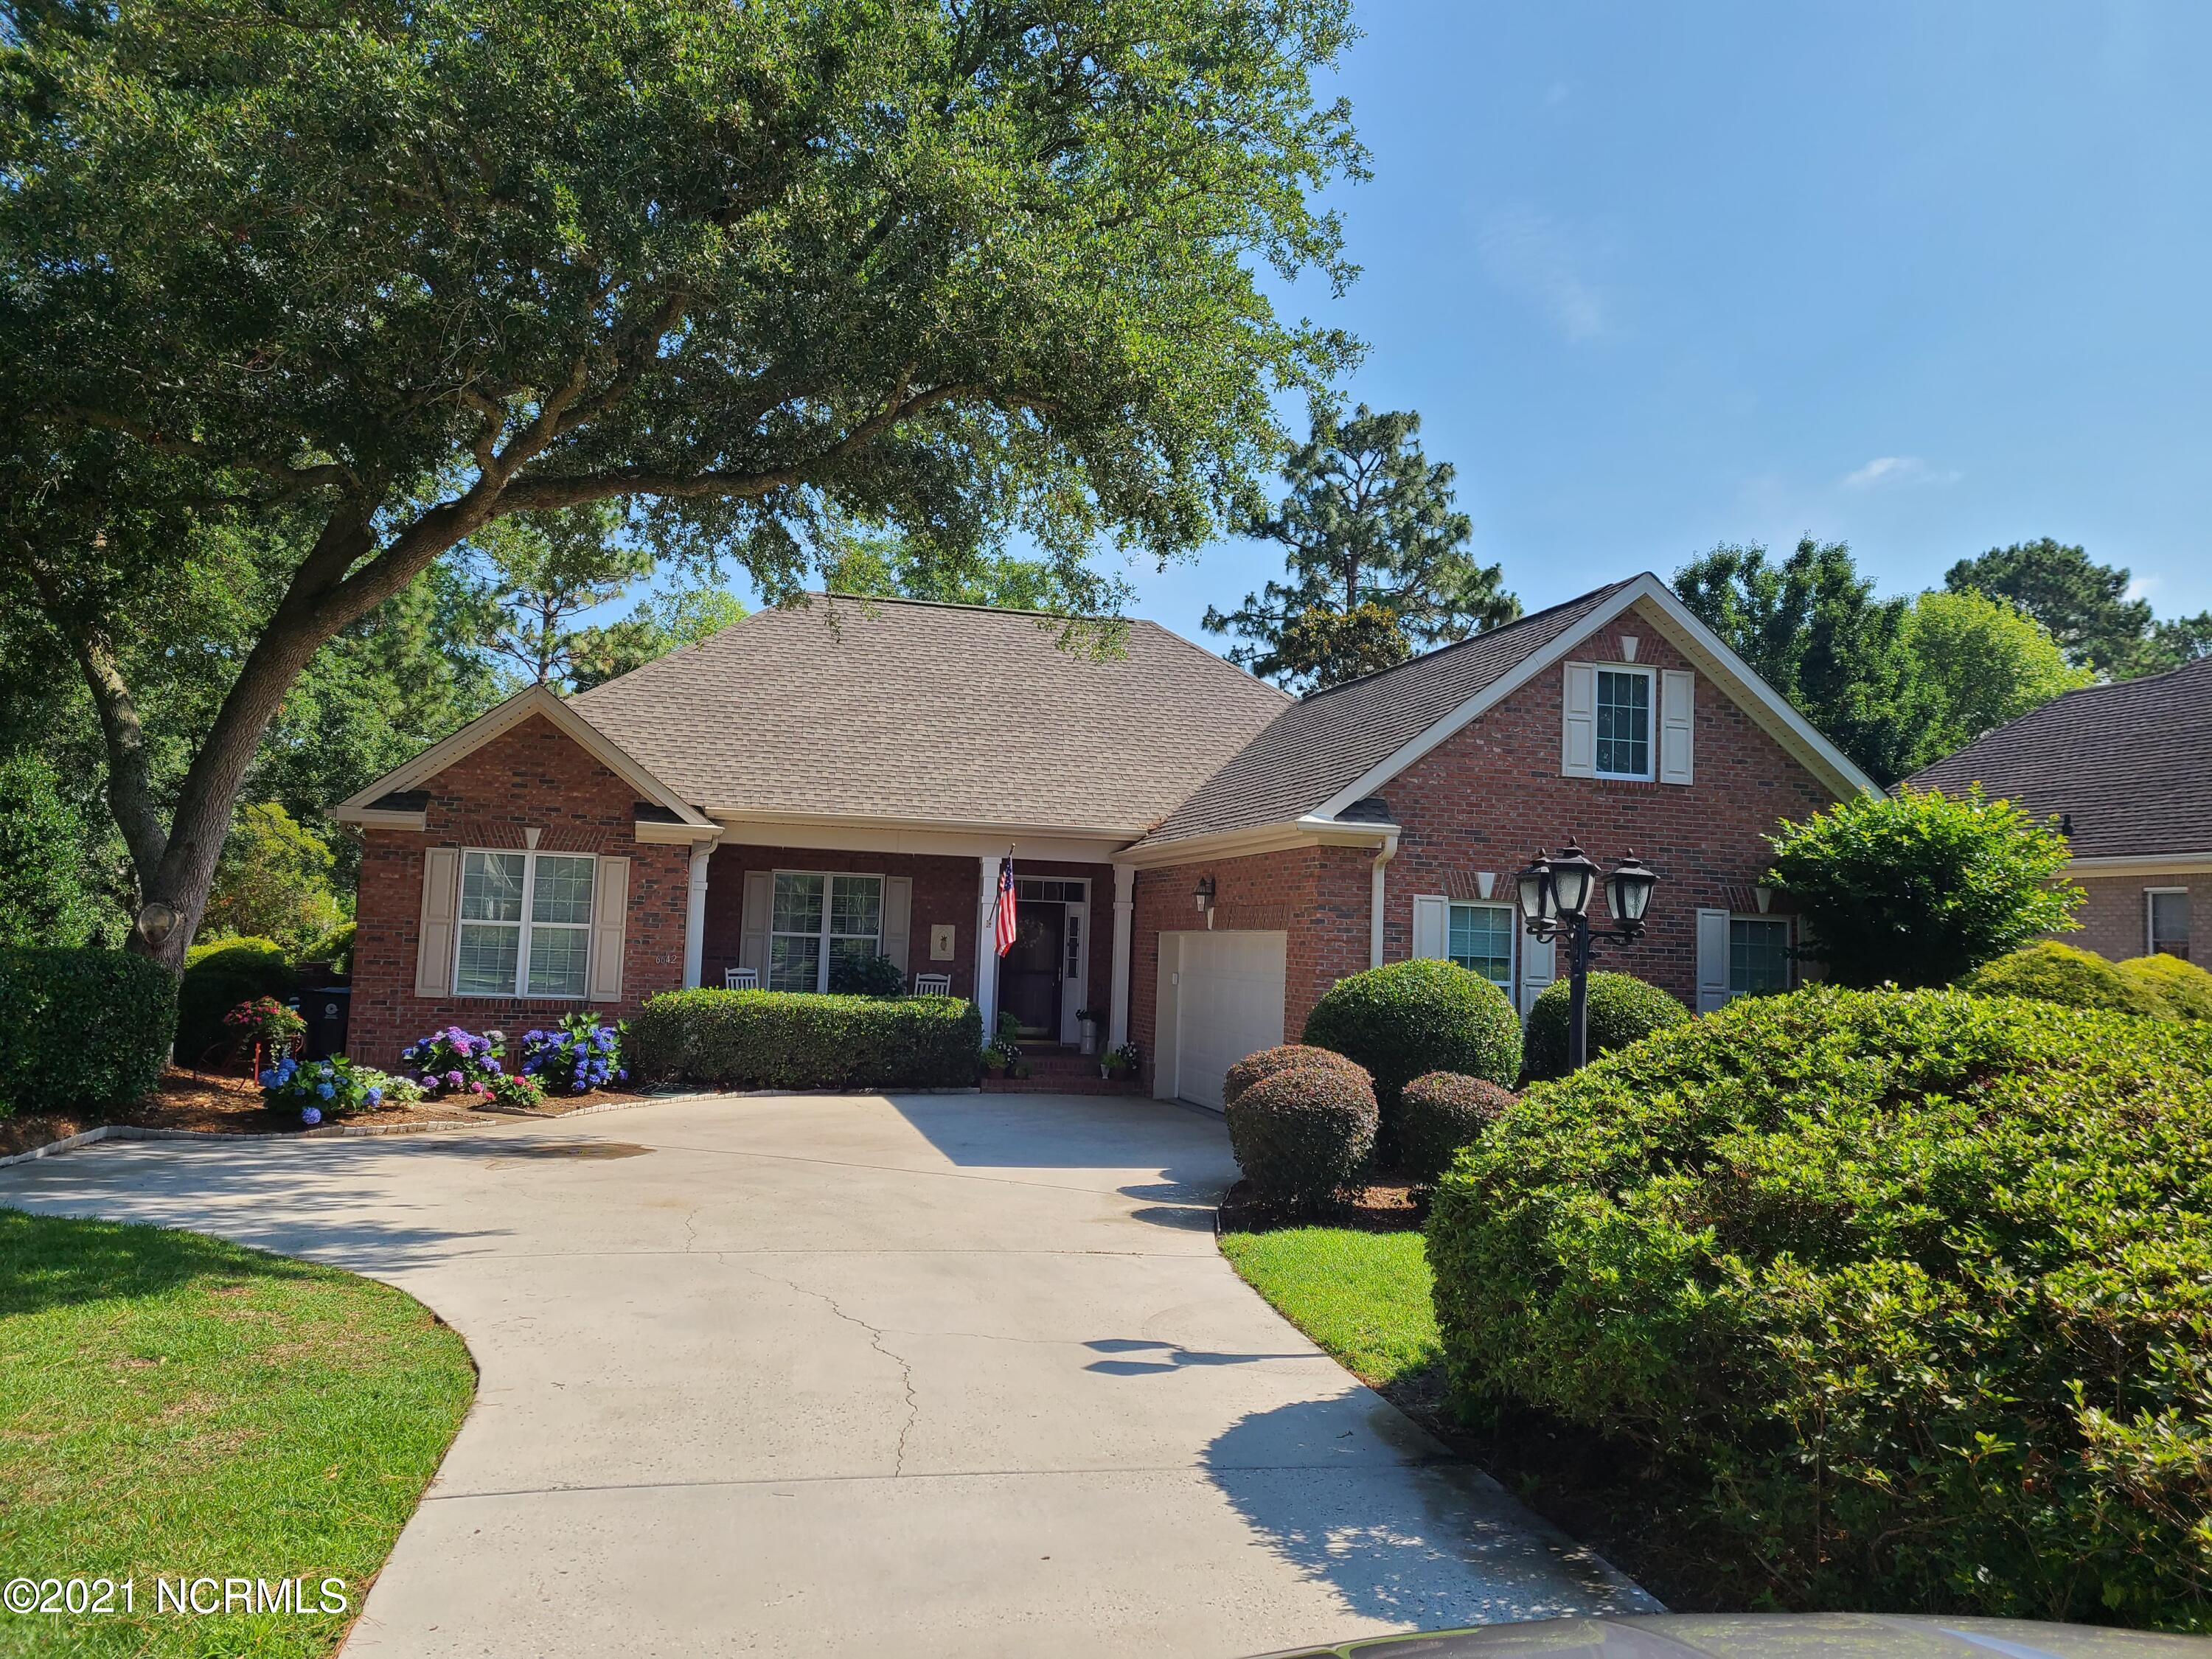 Lovely custom built brick one owner home in one of the prettiest communities in Brunswick County, Ocean Ridge Plantation. All rooms on main level except bonus room over garage which is a perfect craft room, office or 4th bedroom. Gorgeous yard and manicured landscaping. Beautiful mature Live Oak tree in front yard  for welcomed shade on summer days.  all appliances convey including washer-dryer. Comes with 12 month Home warranty covering HVAC, hot water heater, all appliances, plumbing & electrical. This home has been measured and is 2,188 heated sq feet, garage 539 s.f.,, Carolina room has 266 s.f,  not heated or cooled but can easily be done with a split system. Tremendous patio with 12 x 12 pavers individally seated over concrete.  Ocean Ridge Plantation offers a big private Oceanfront Beach Clubhouse & private beach parking at Sunset Beach, 3 golf courses, two lovely clubhouses, a Plantation house with 5 star amenities including indoor heated pool, sauna, jacuzzi, big outdoor pool, Grand ball room, fantastic  exercise room with state of the art equipment, Tennis courts, sidewalks for biking & jogging, Plantation Gardens to grow vegetables, herbs & gorgeous flowers, wonderful neighbors. so who could ask for more. This home is located 45 min South of Wilmington International Airport & 45 min. north of Myrtle Beach International airport. This home is 3 miles from Sunset Beach & 3 miles from Ocean Isle Beach, two of the prettiest FAMILY beaches in Southeastern N. C. . Just 10 minutes away from your  front door you have all the conveniences of 3 grocery stores, 3 drug stores, 2 fresh seafood markets, 10 banks, many restaurants and retail shops, Sunset Beach Planetarium and Coastal Museum, a Marina with boat storage, 3 Wildlife deep water Boat Ramps, tackle shops, florist, fresh veggie markets, doctor, dentist & veterinarian offices, a private airport & approx 20 minutes from Novant Hospital. This is the perfect house & perfect community. Low prop. taxes ONLY  $2,307,